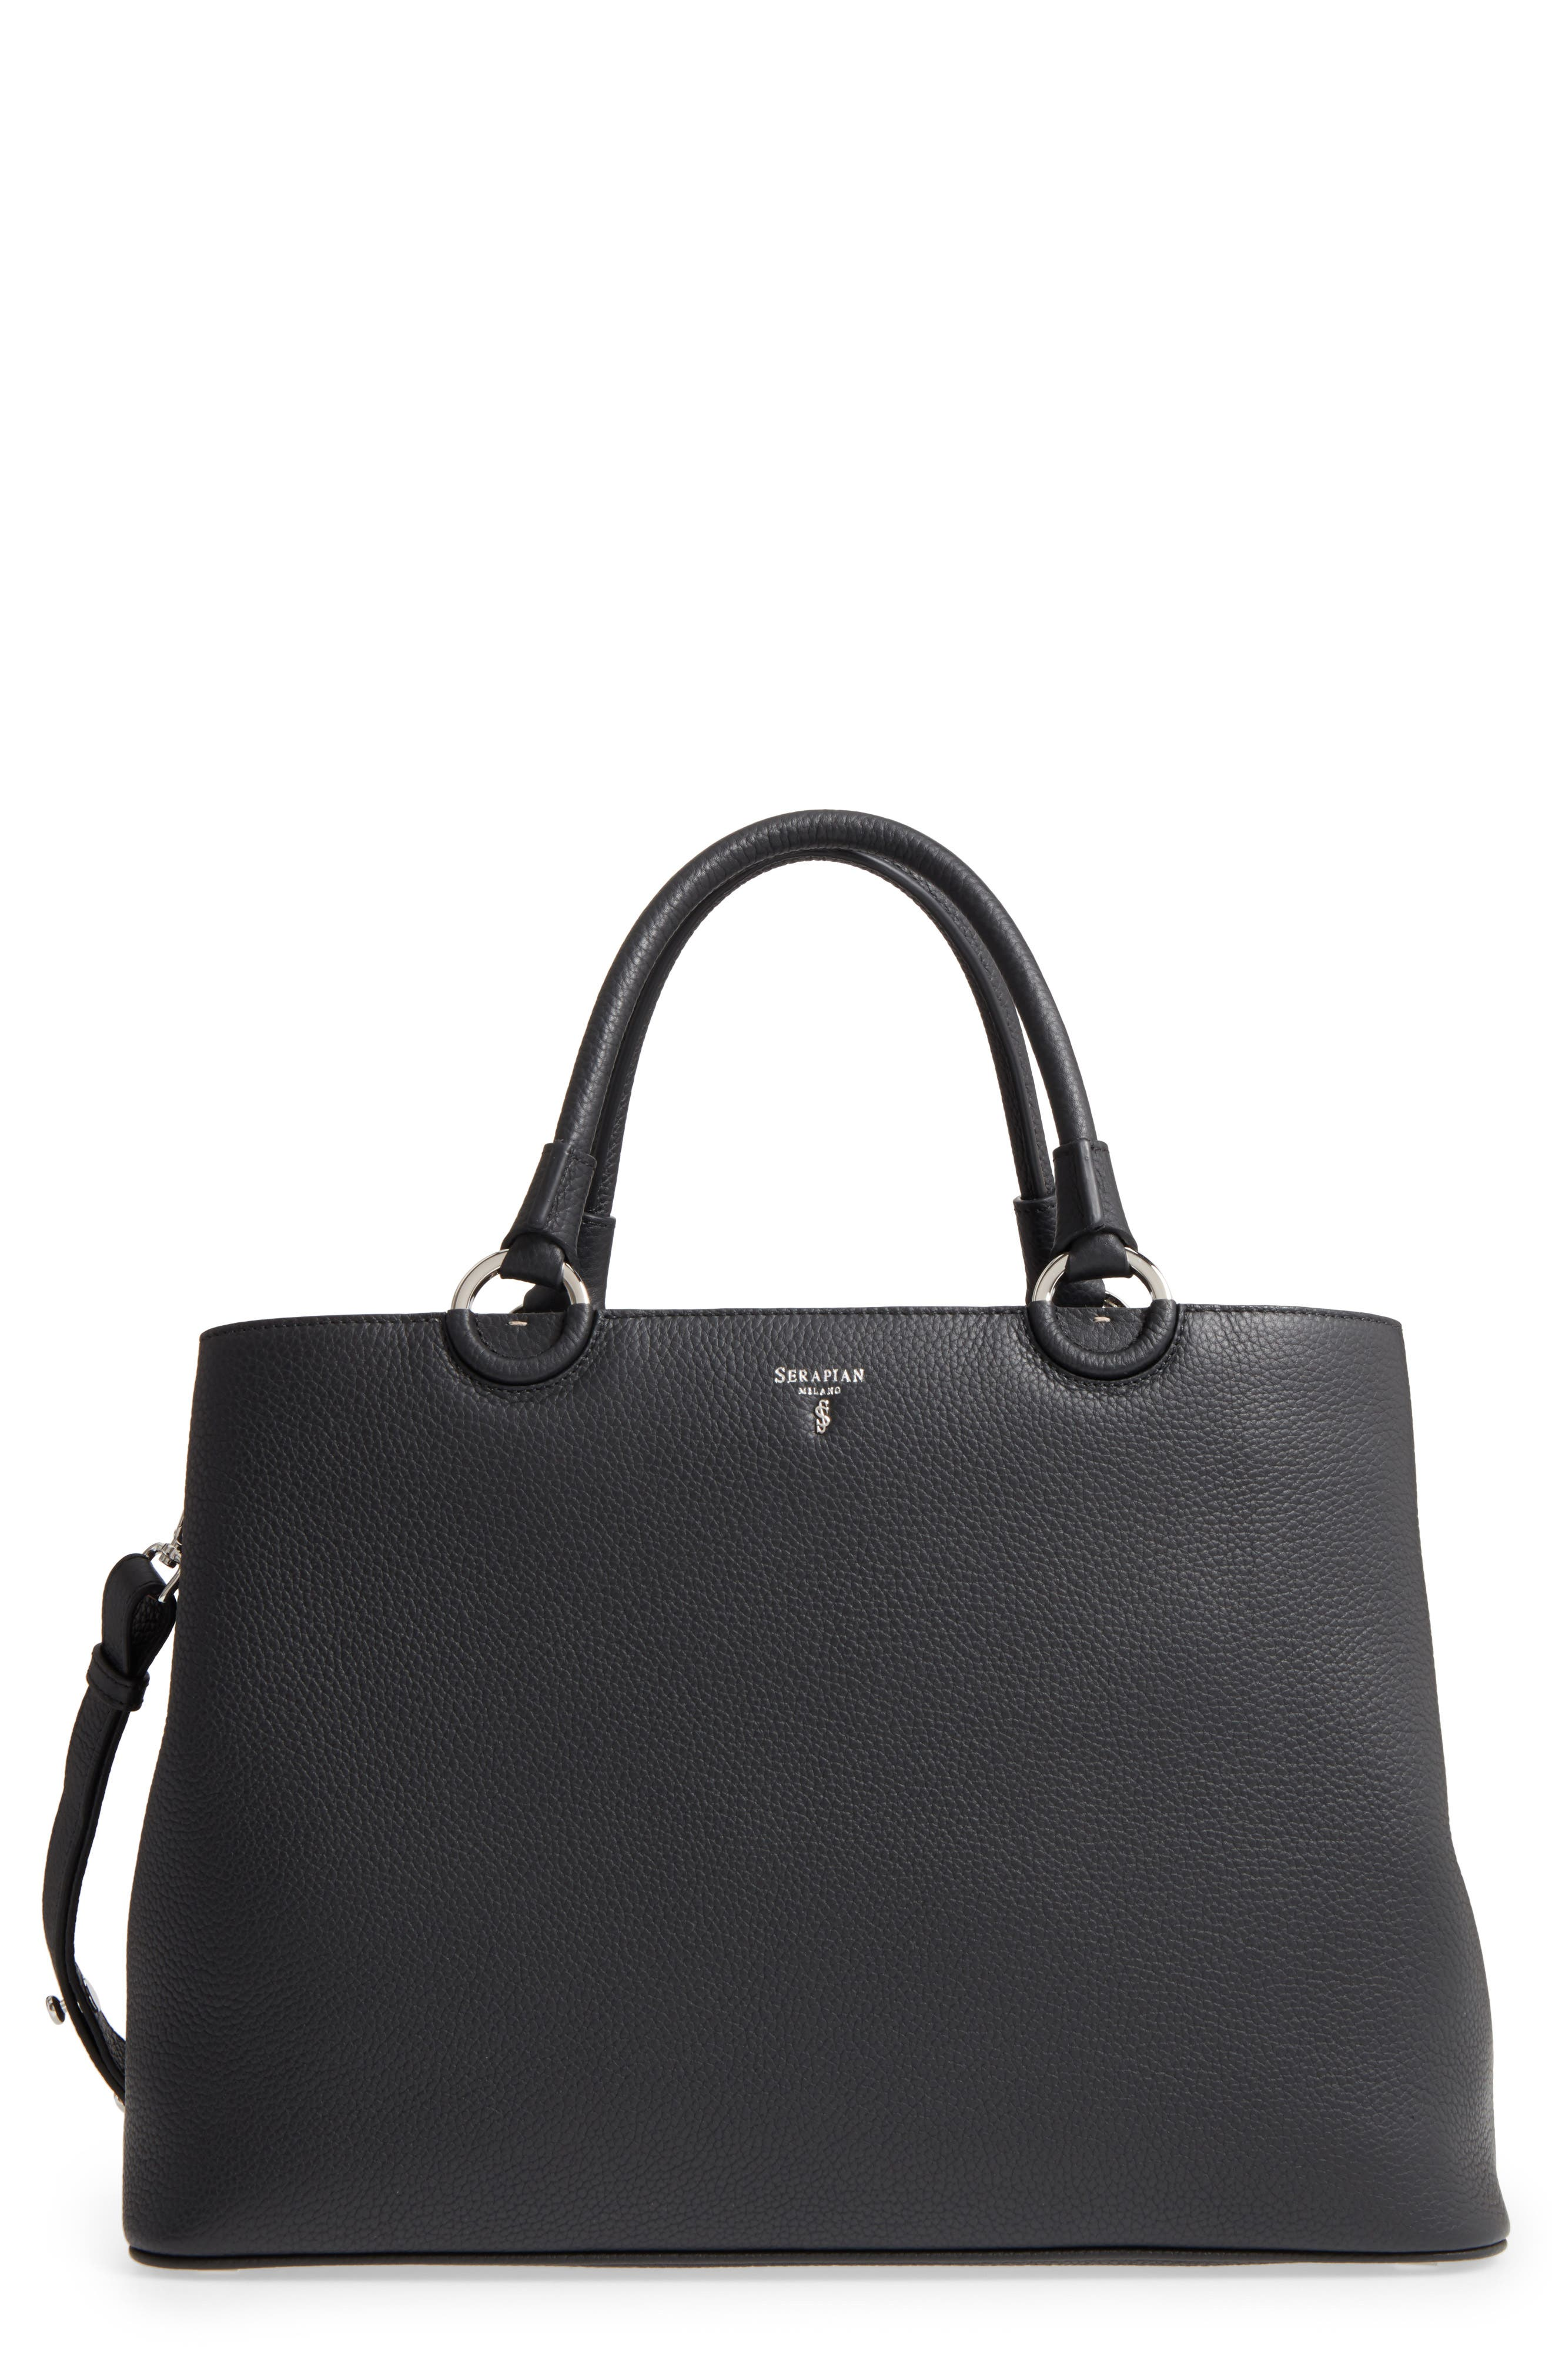 Alternate Image 1 Selected - Serapian Milano Veronica Cachemire Leather Tote